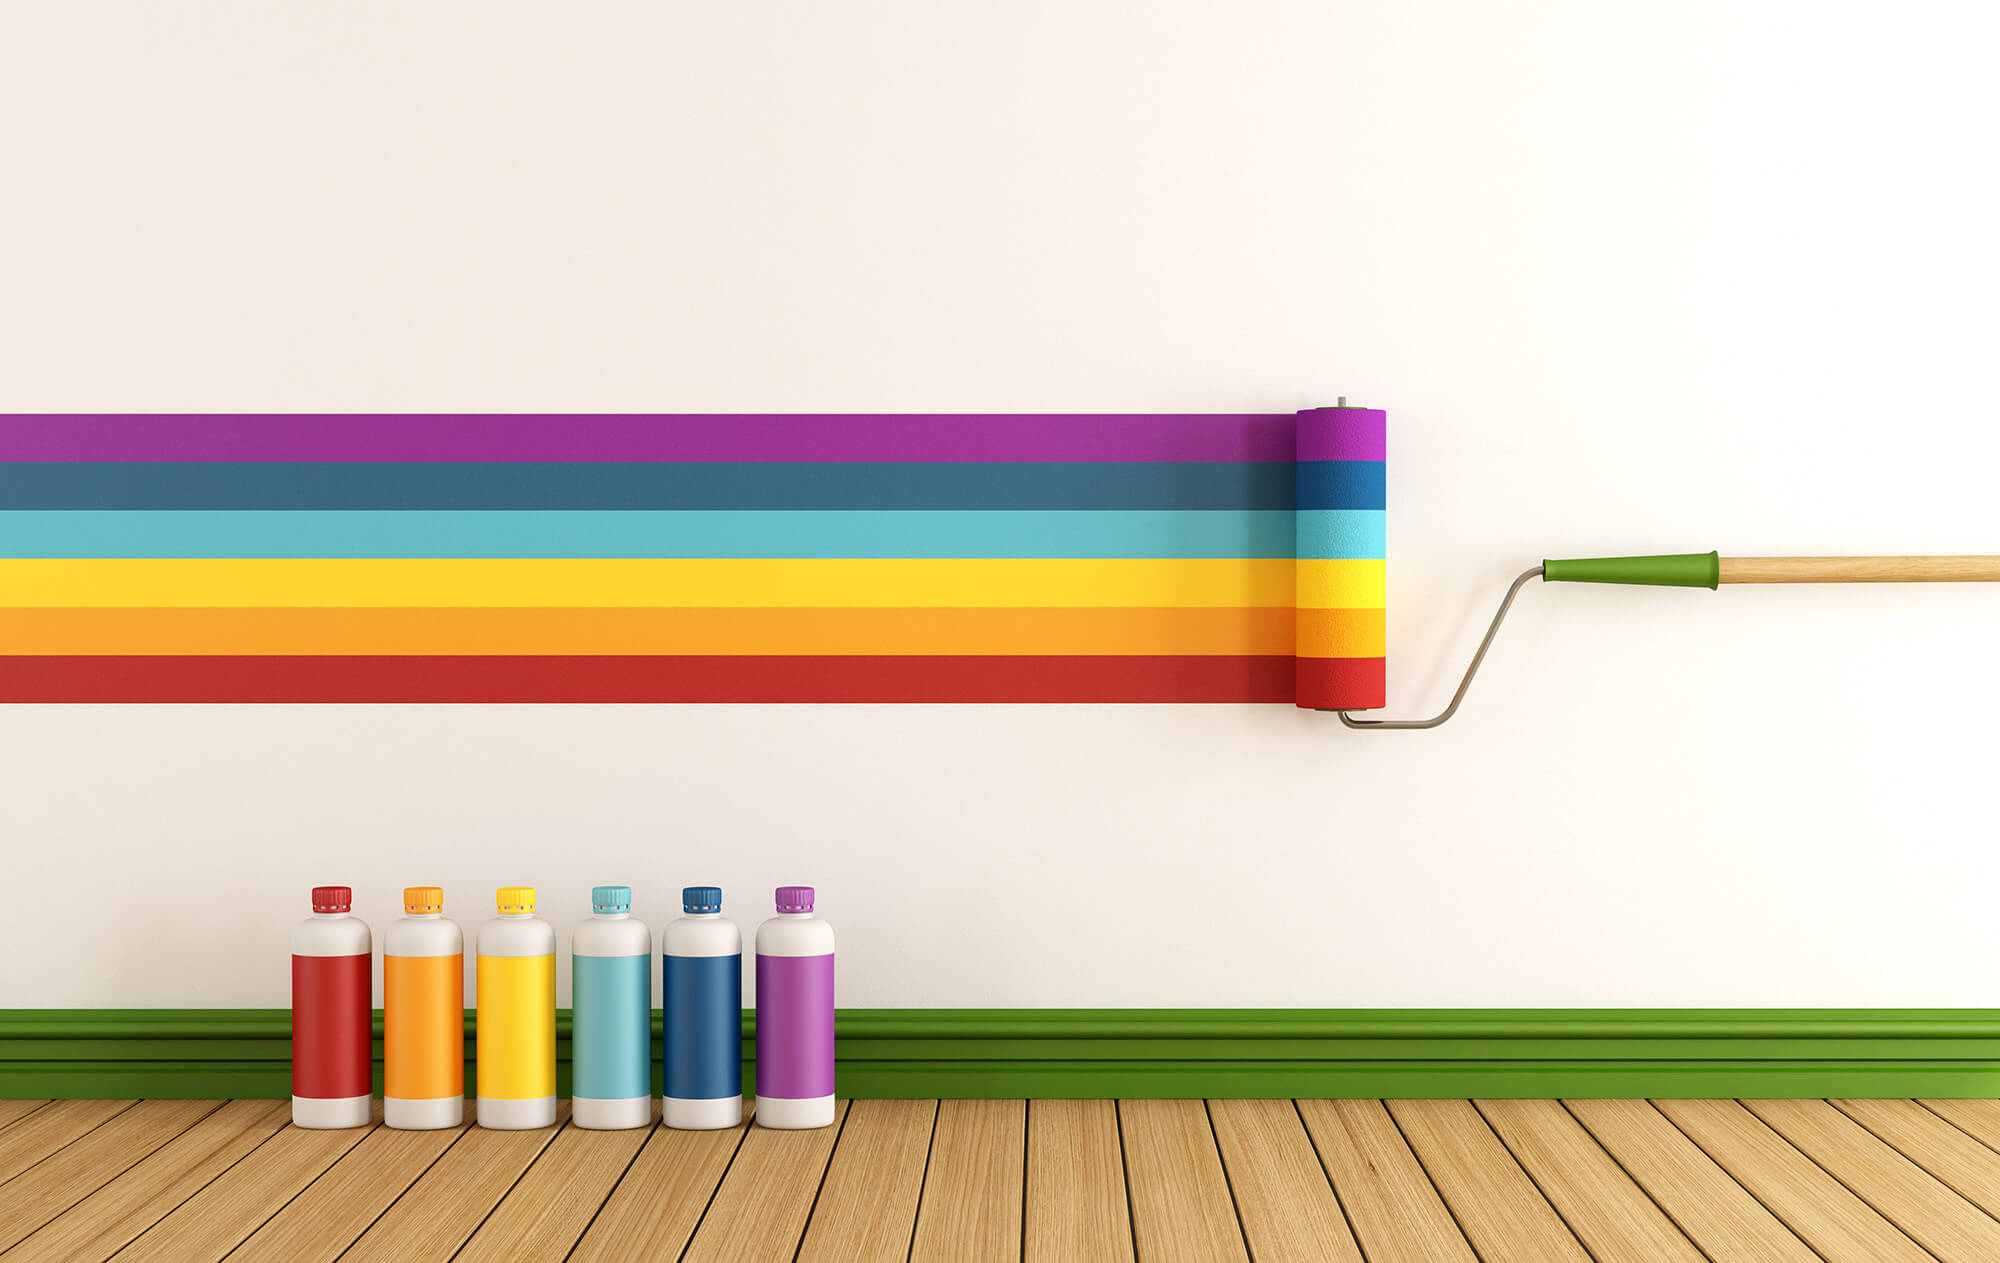 select-color-swatch-to-paint-wall